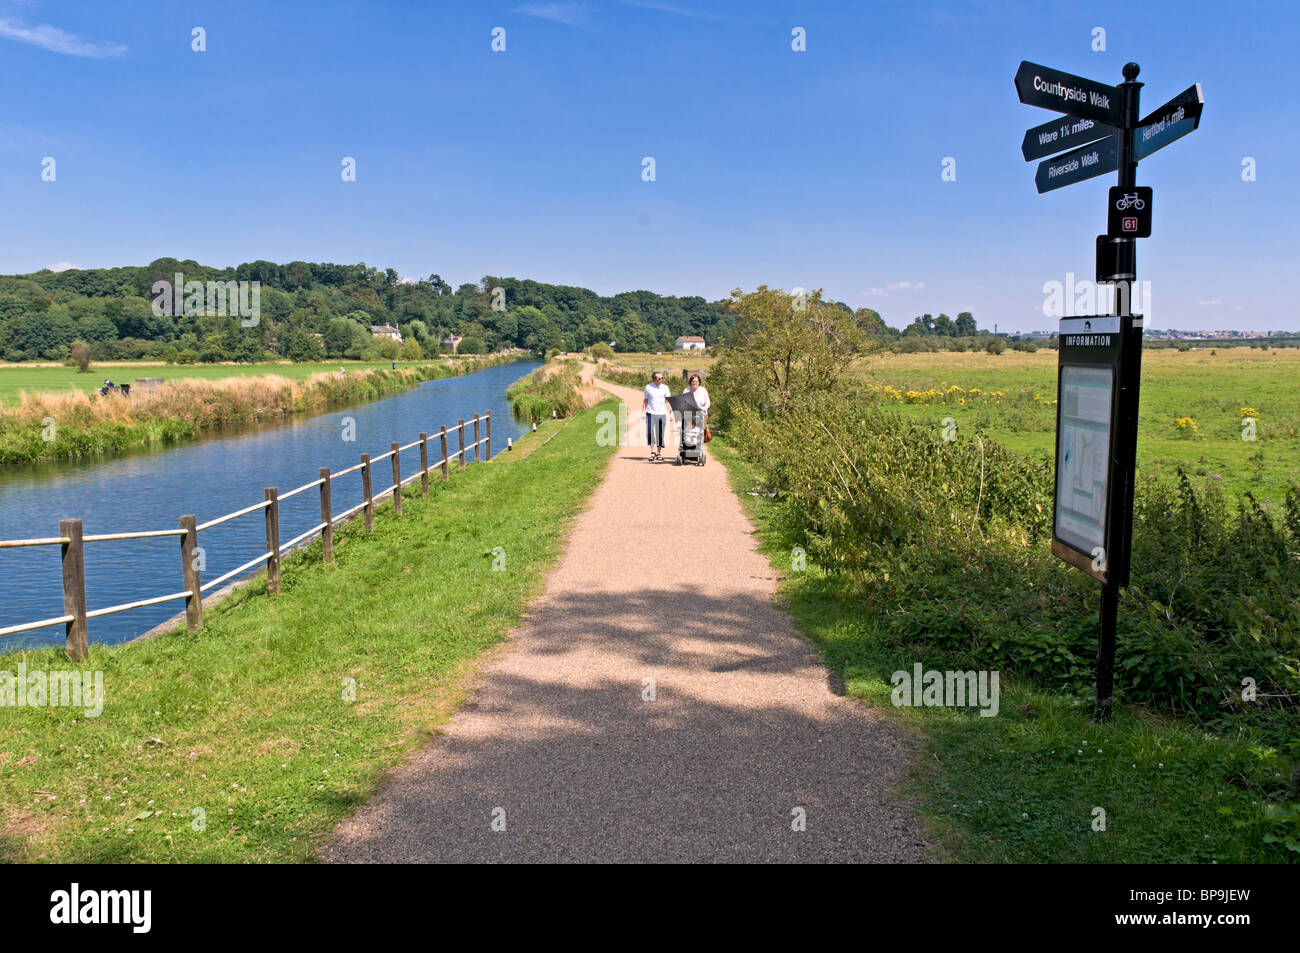 River Lea Navigation Canal and Towpath, Hertfordshire, United Kingdom - Stock Image